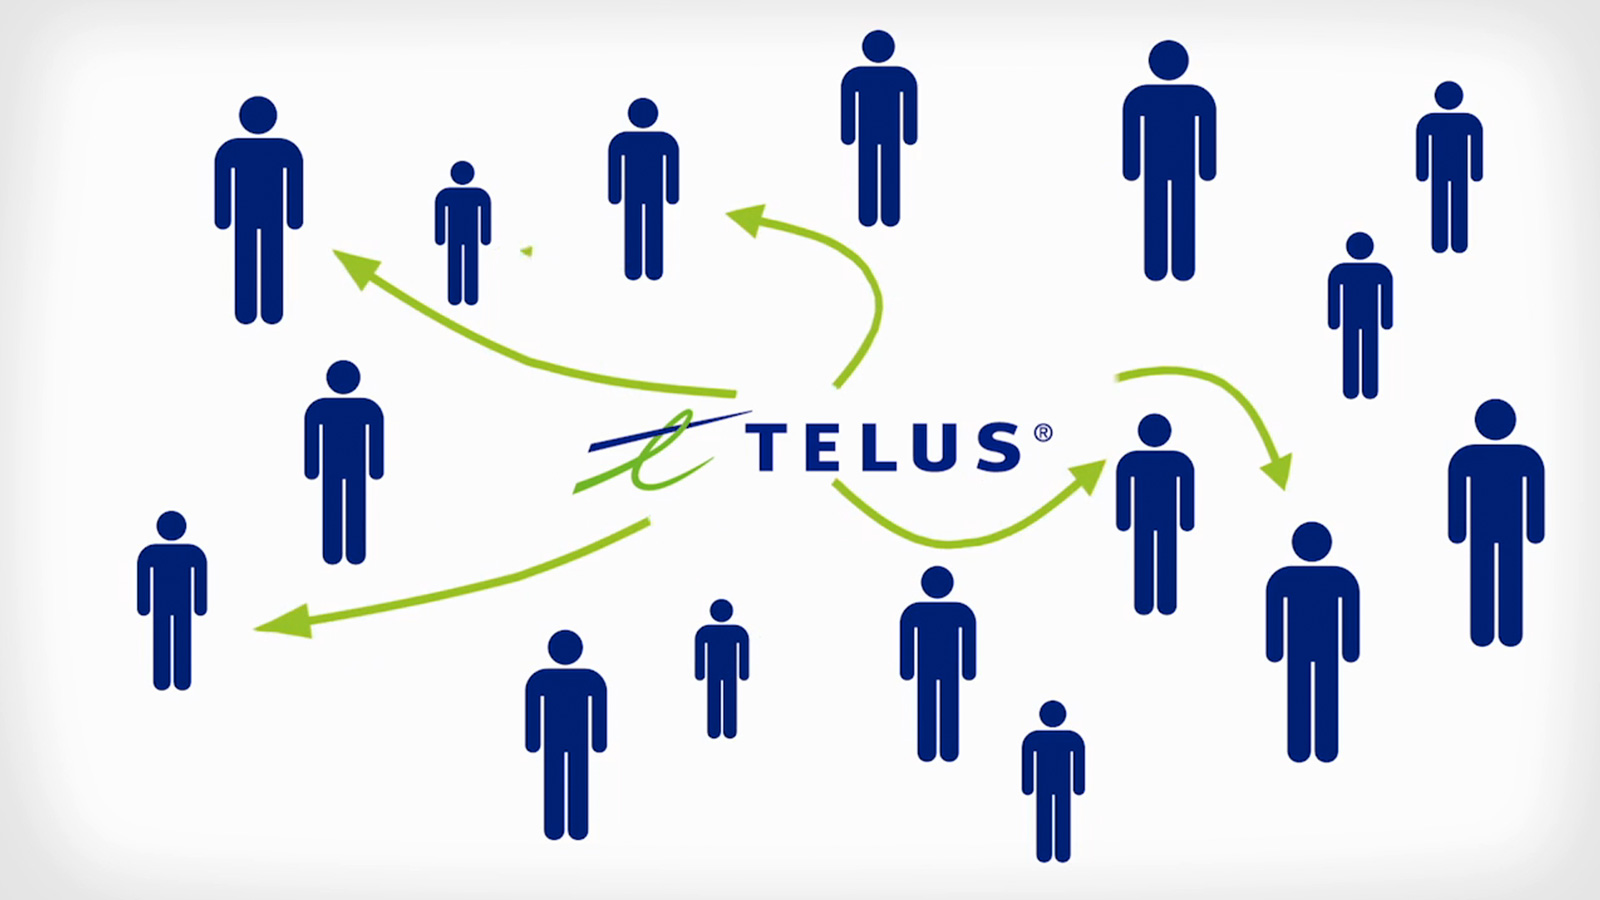 TELUS | TELUS parle Affaires | CRM, Développement d'application, Innovation numérique, Marketing de contenu, Marketing numérique, Responsive Web Design, Stratégie